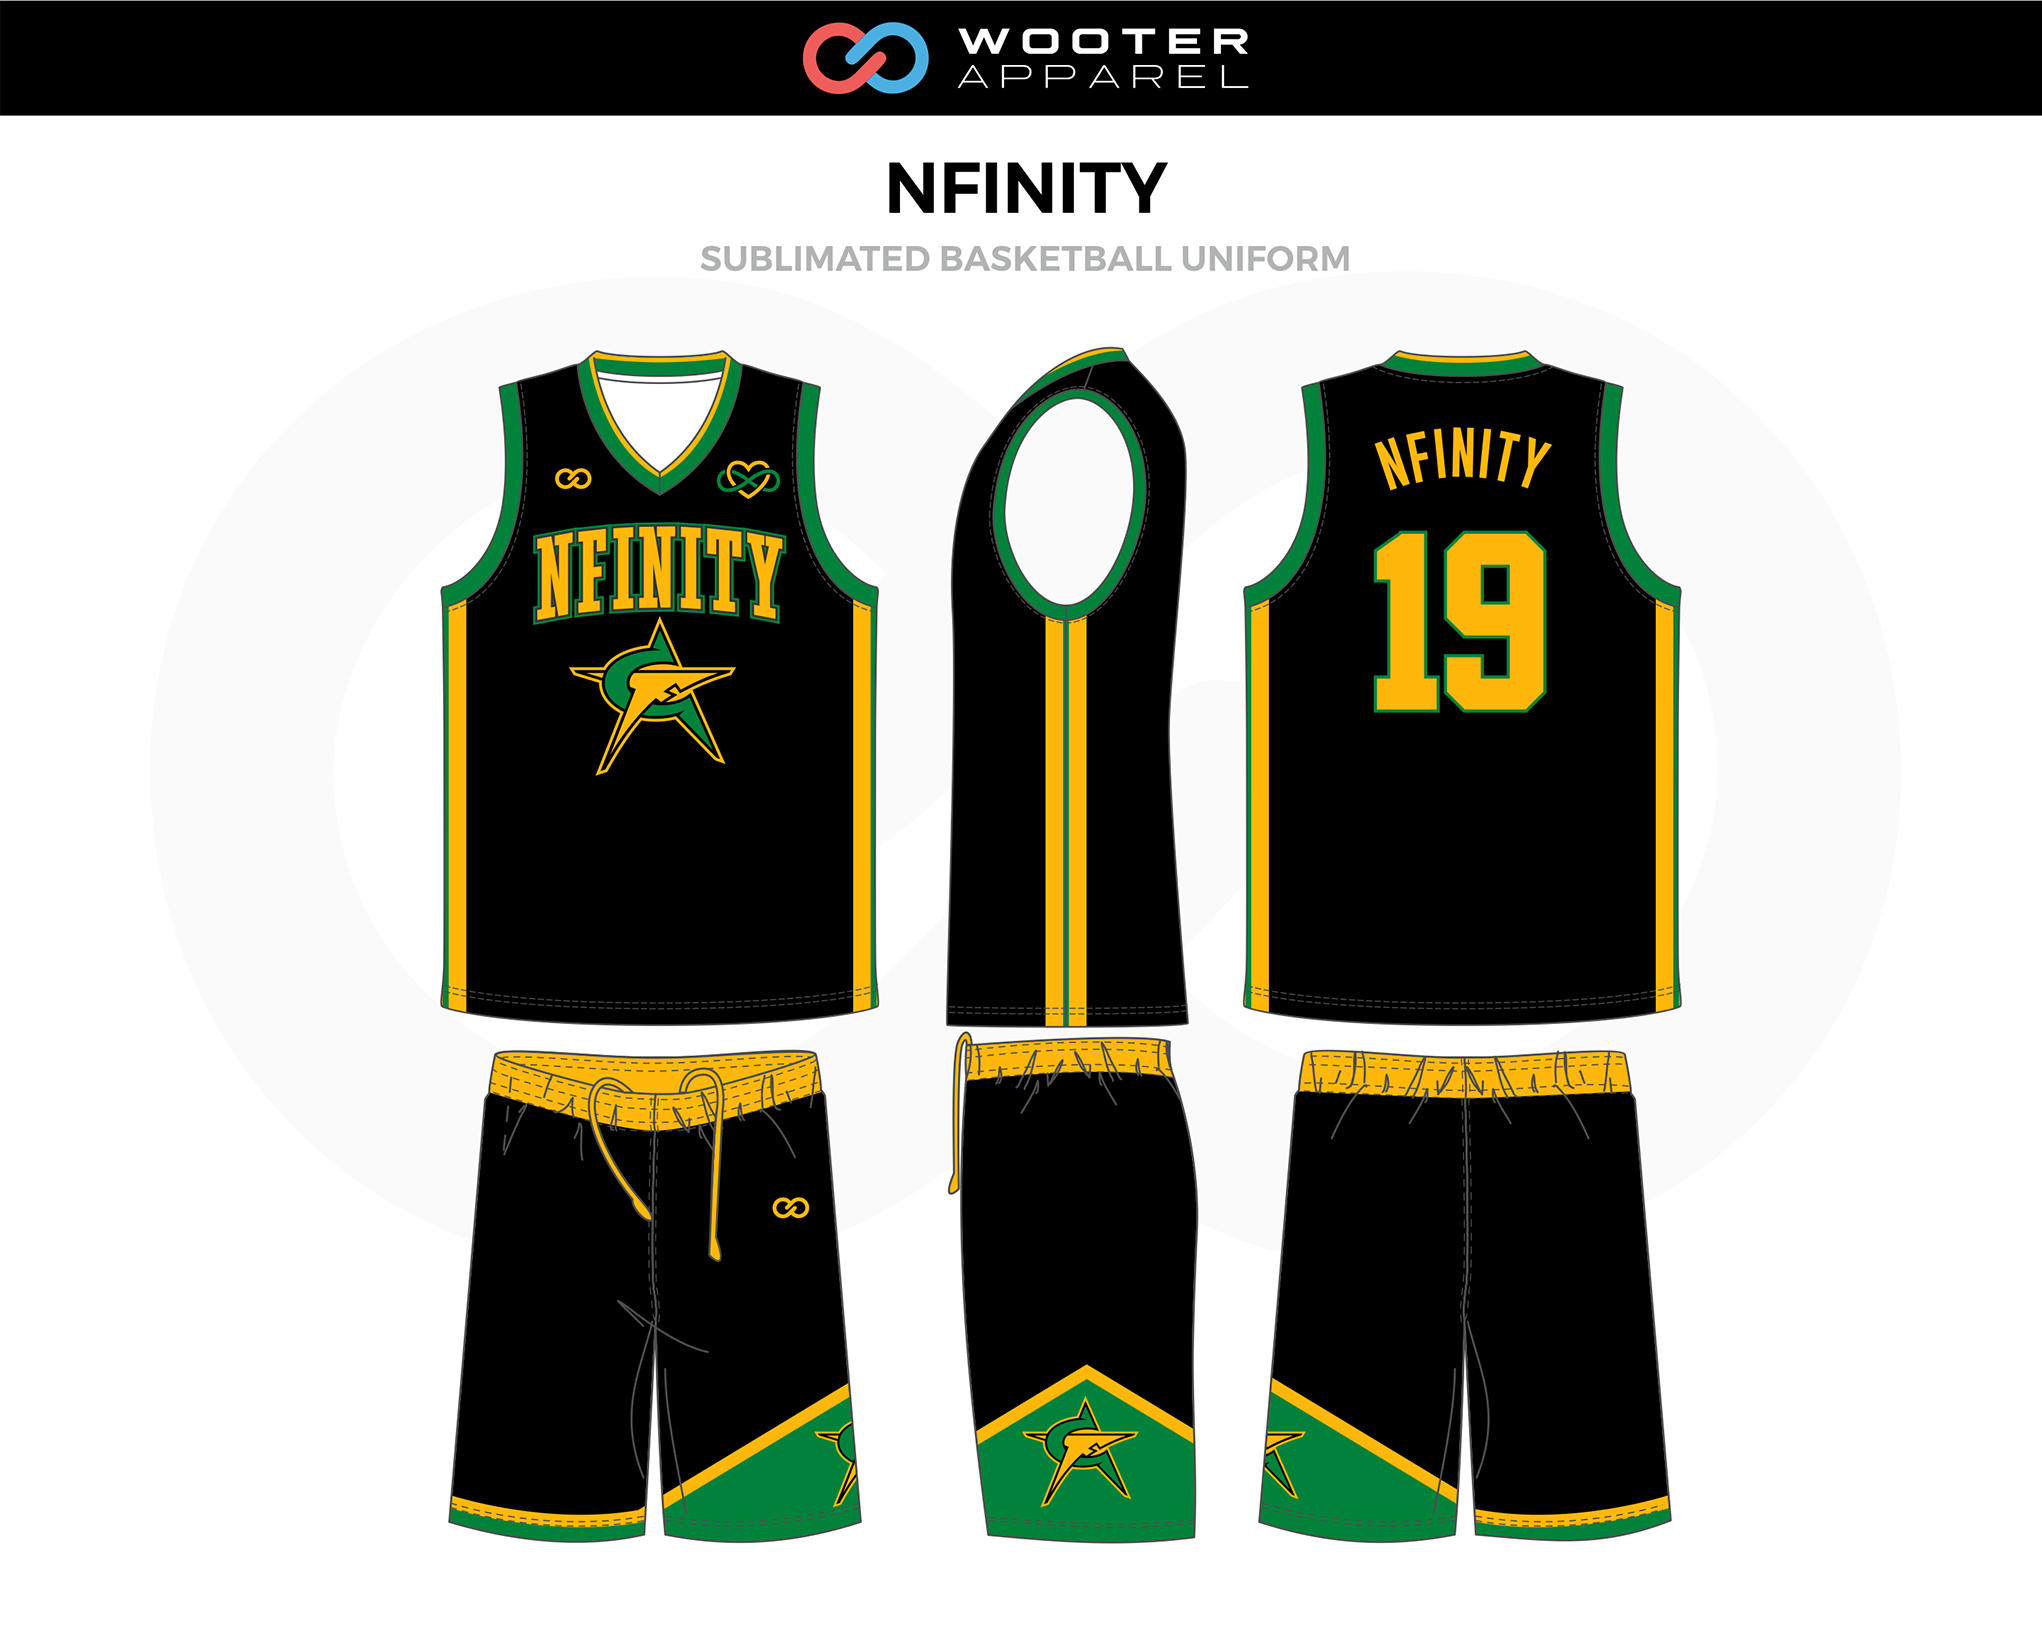 NFINITY Black Yellow Green Basketball Uniform, Jersey and Shorts